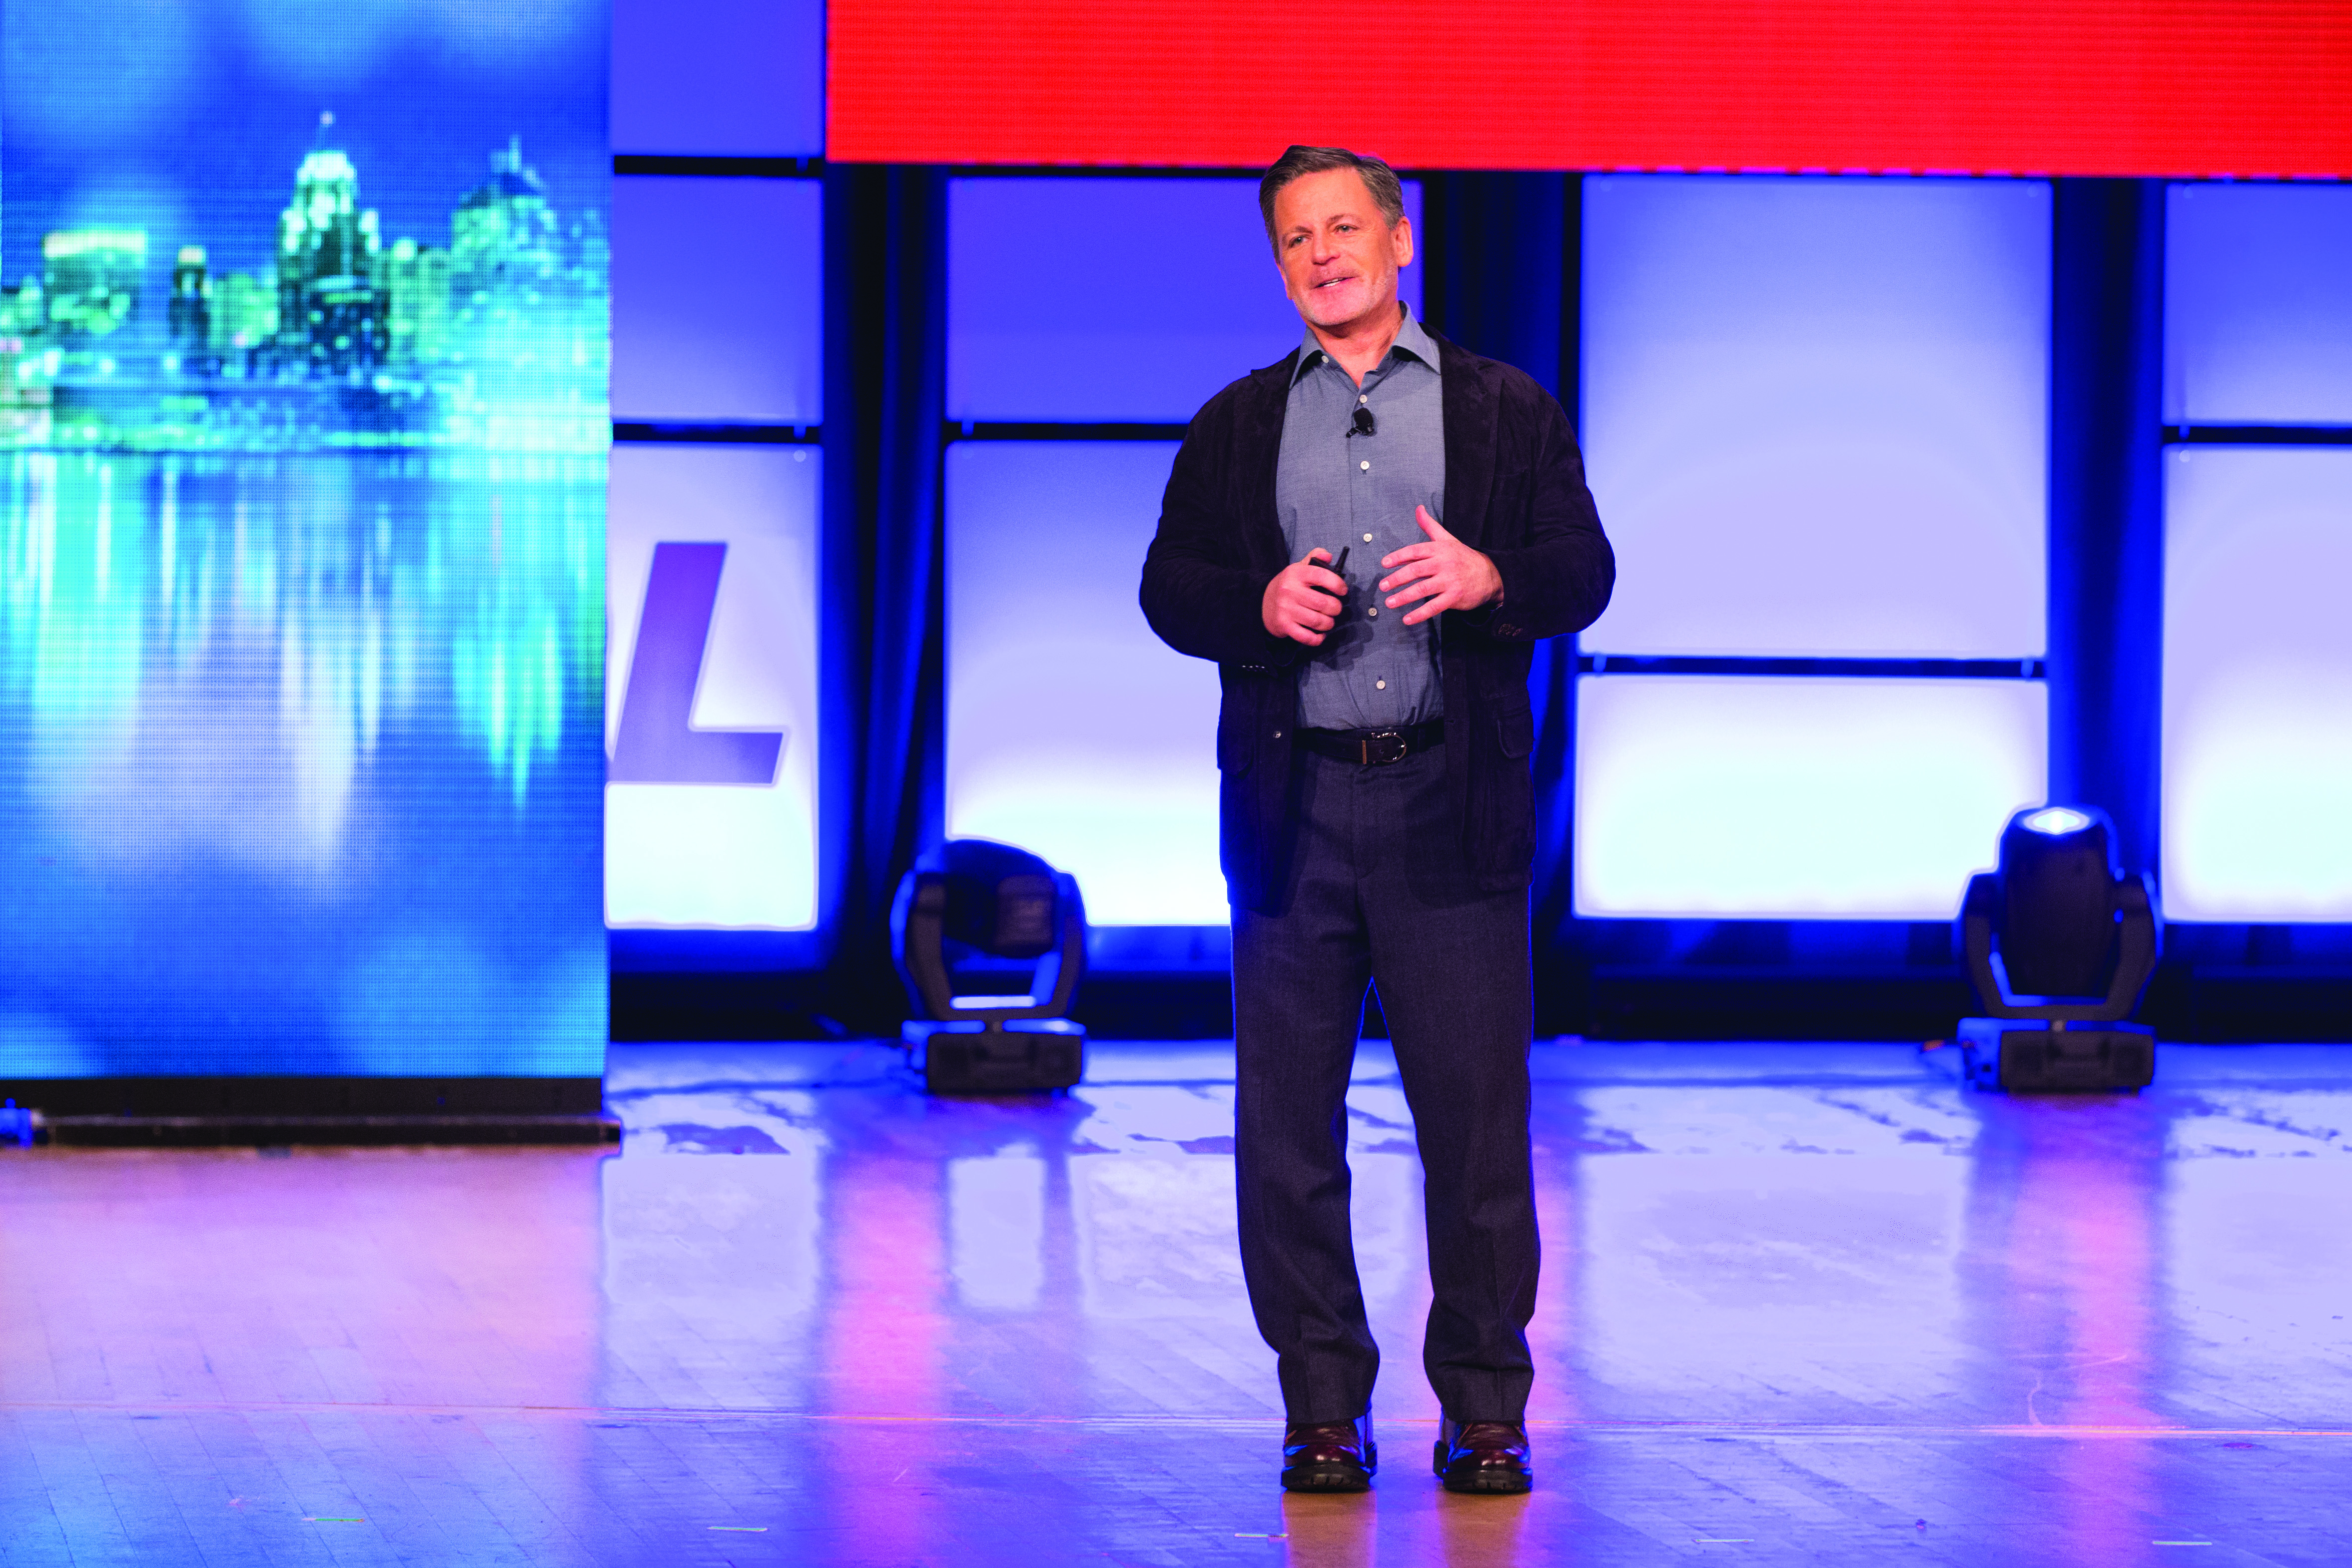 ISMs Day, July 2015., Dan Gilbert speaking to team members about the Quicken Loans and FOC culture and ISMs.